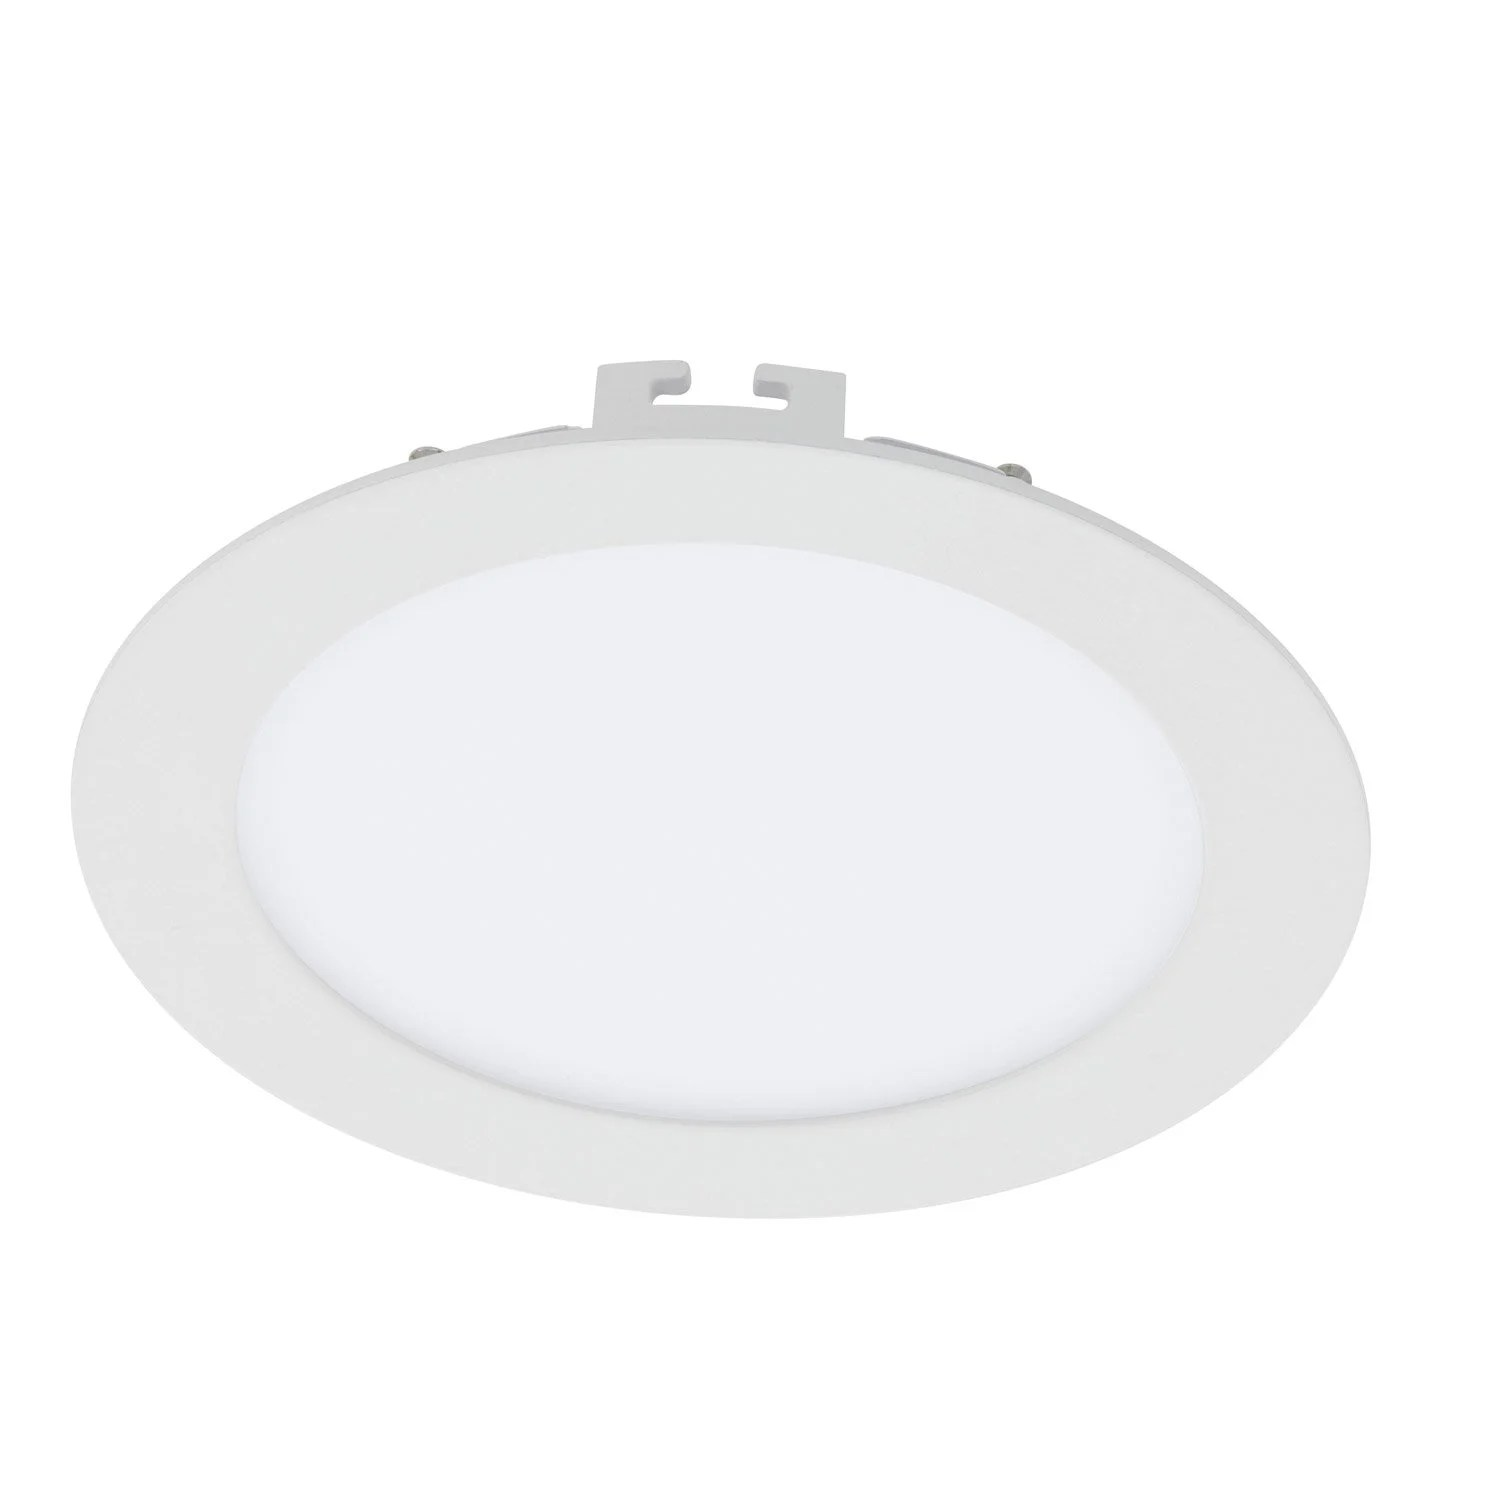 Spot Cuisine Spot Led Encastrable Plafond Cuisine Awesome Spot Led